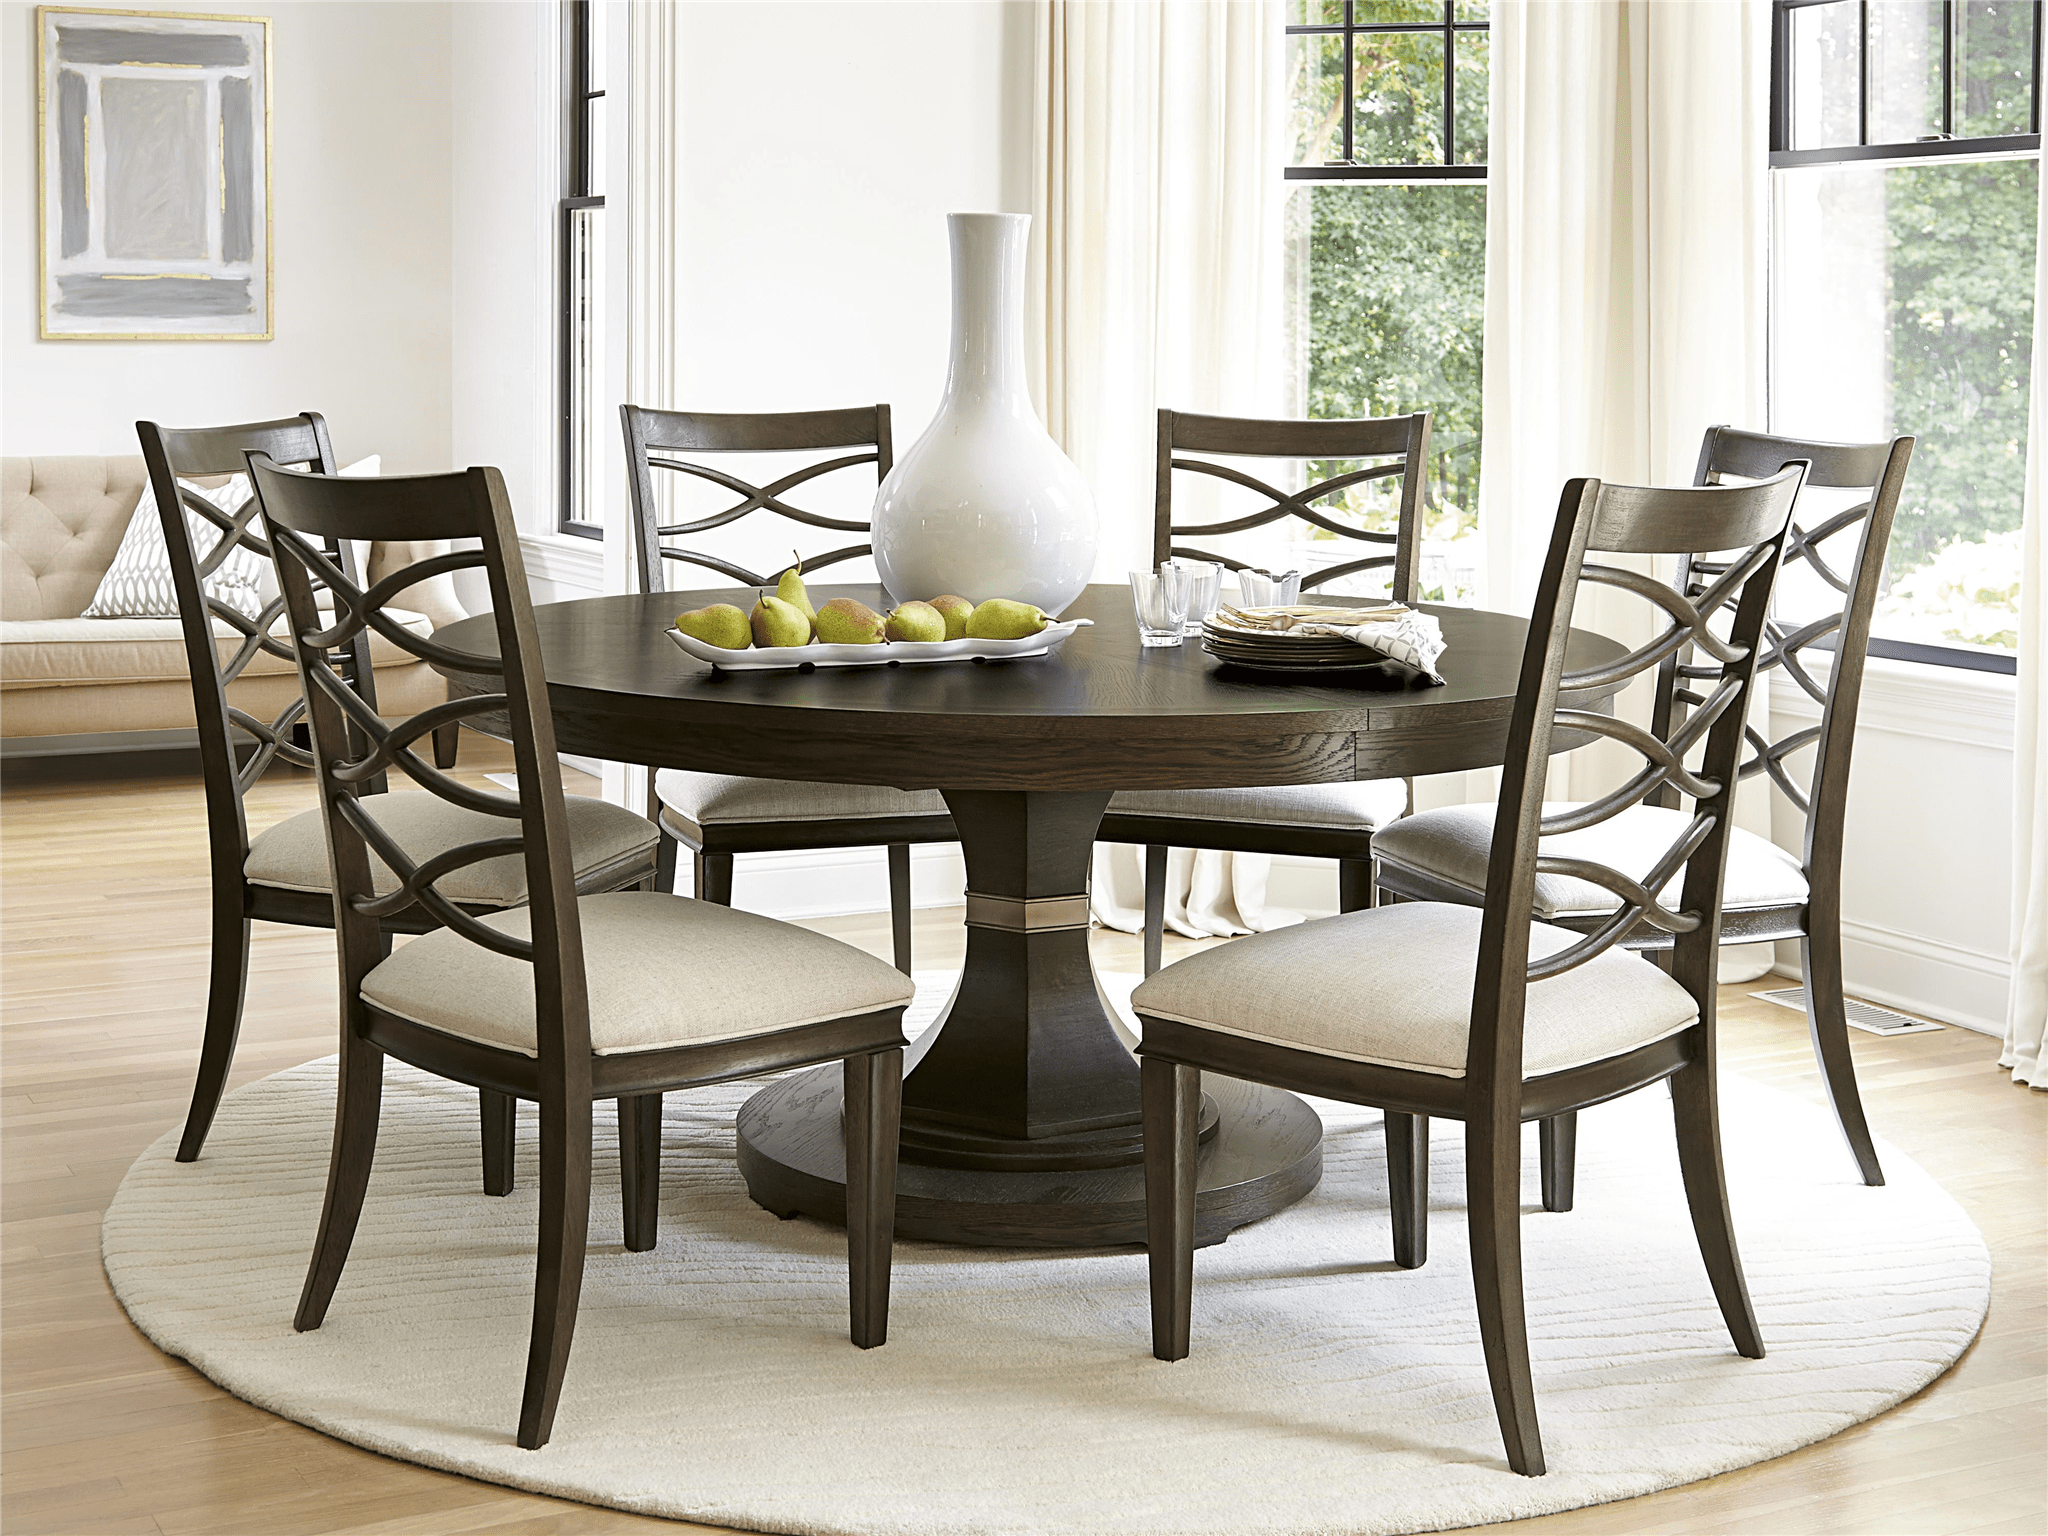 round dining table 1 round kitchen table set